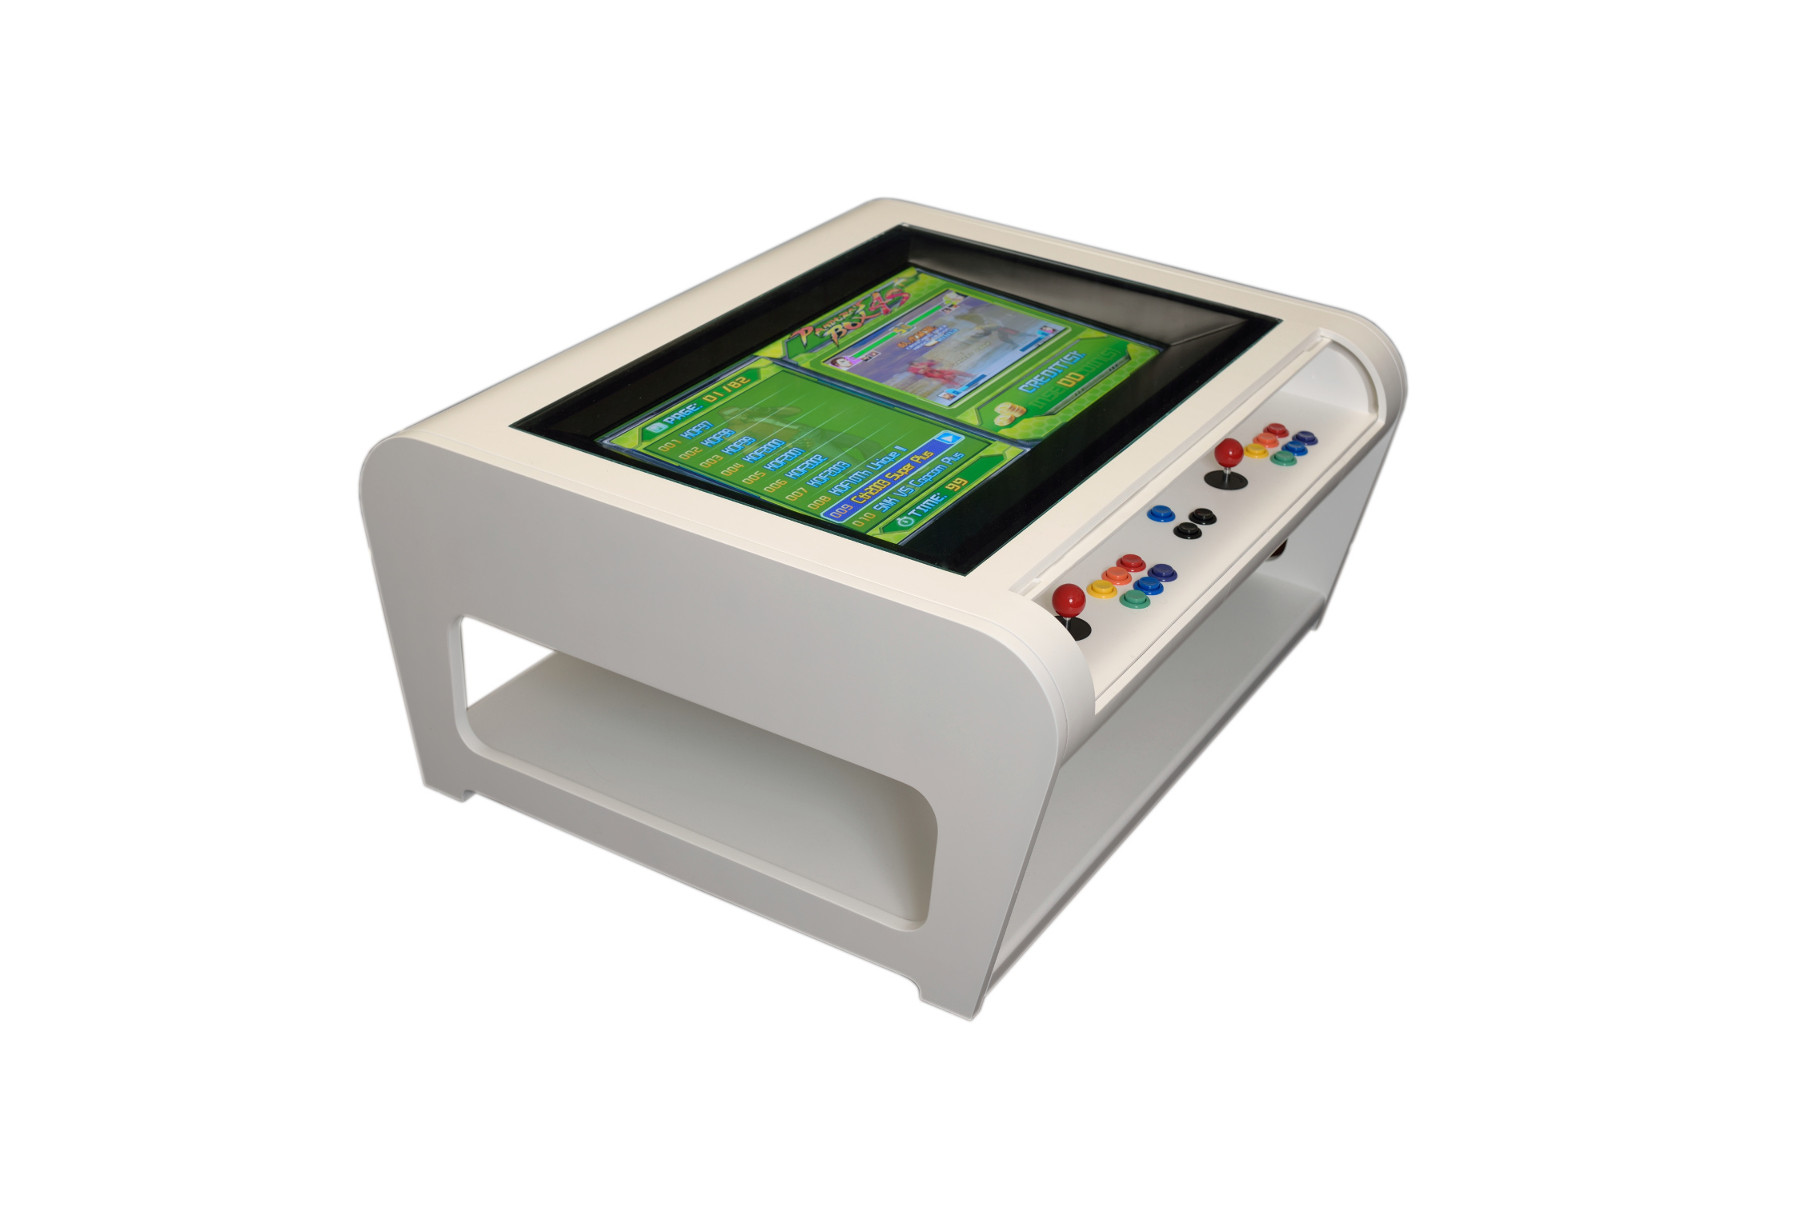 Modern Coffee Table Style Arcade Machine With 960 Plus Games